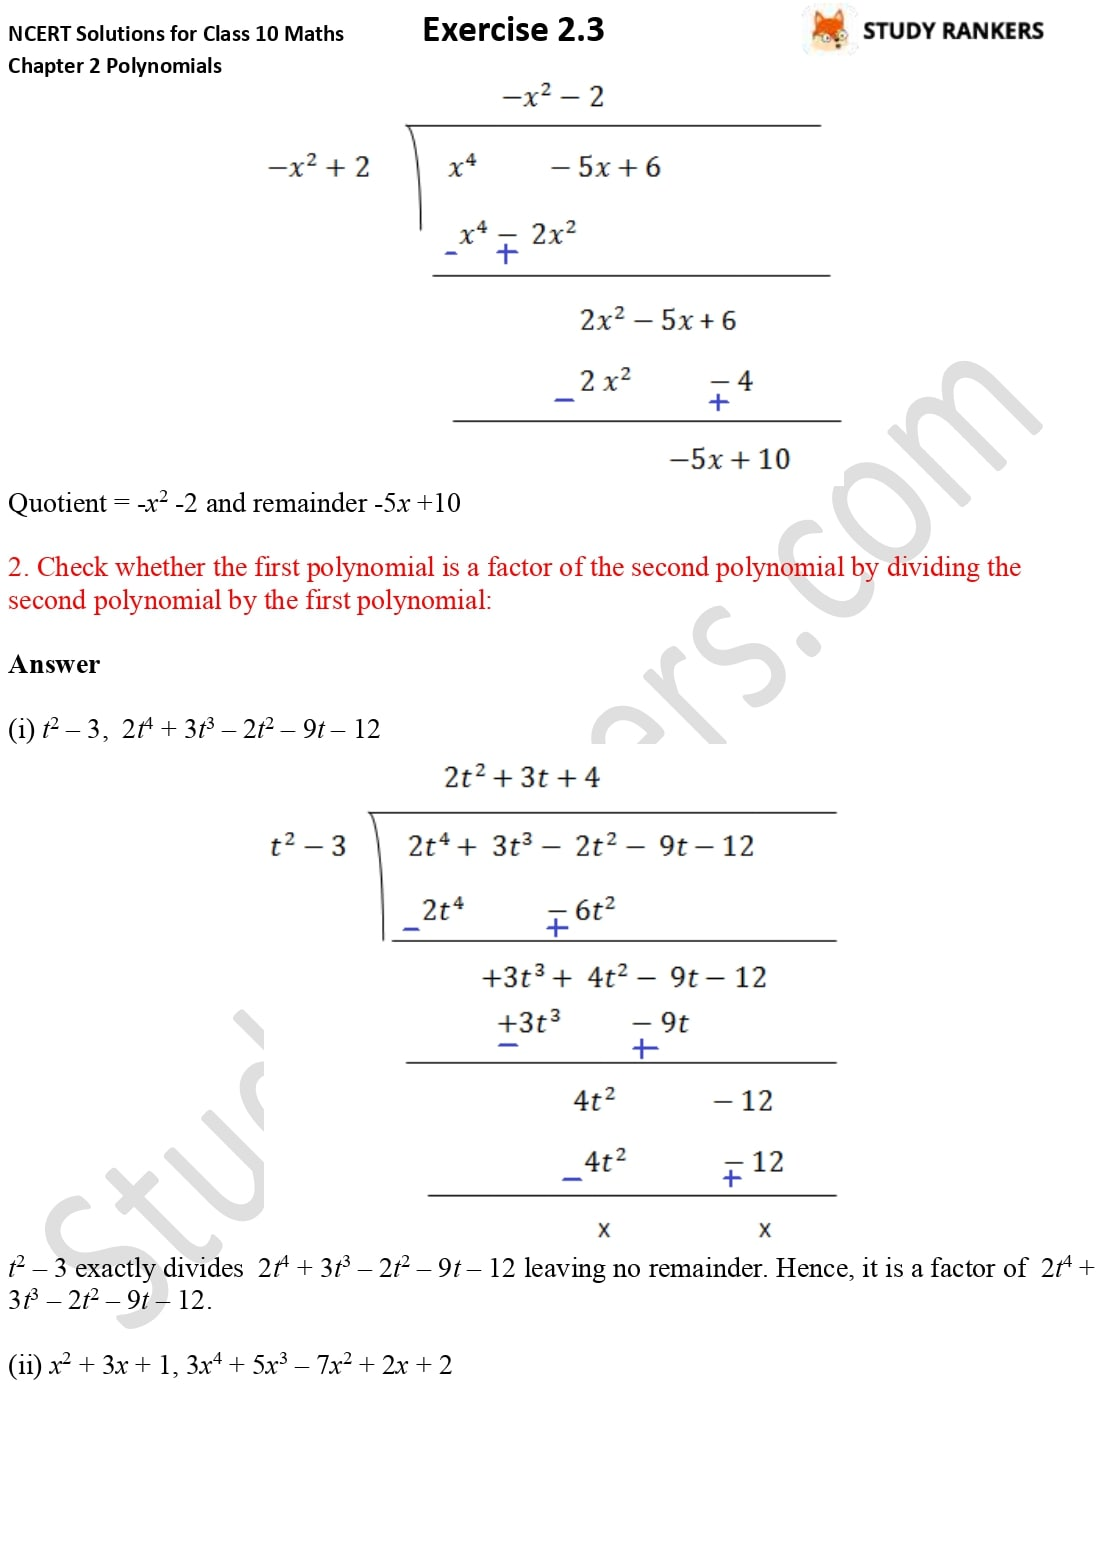 NCERT Solutions for Class 10 Maths Chapter 2 Polynomials Exercise 2.3 2